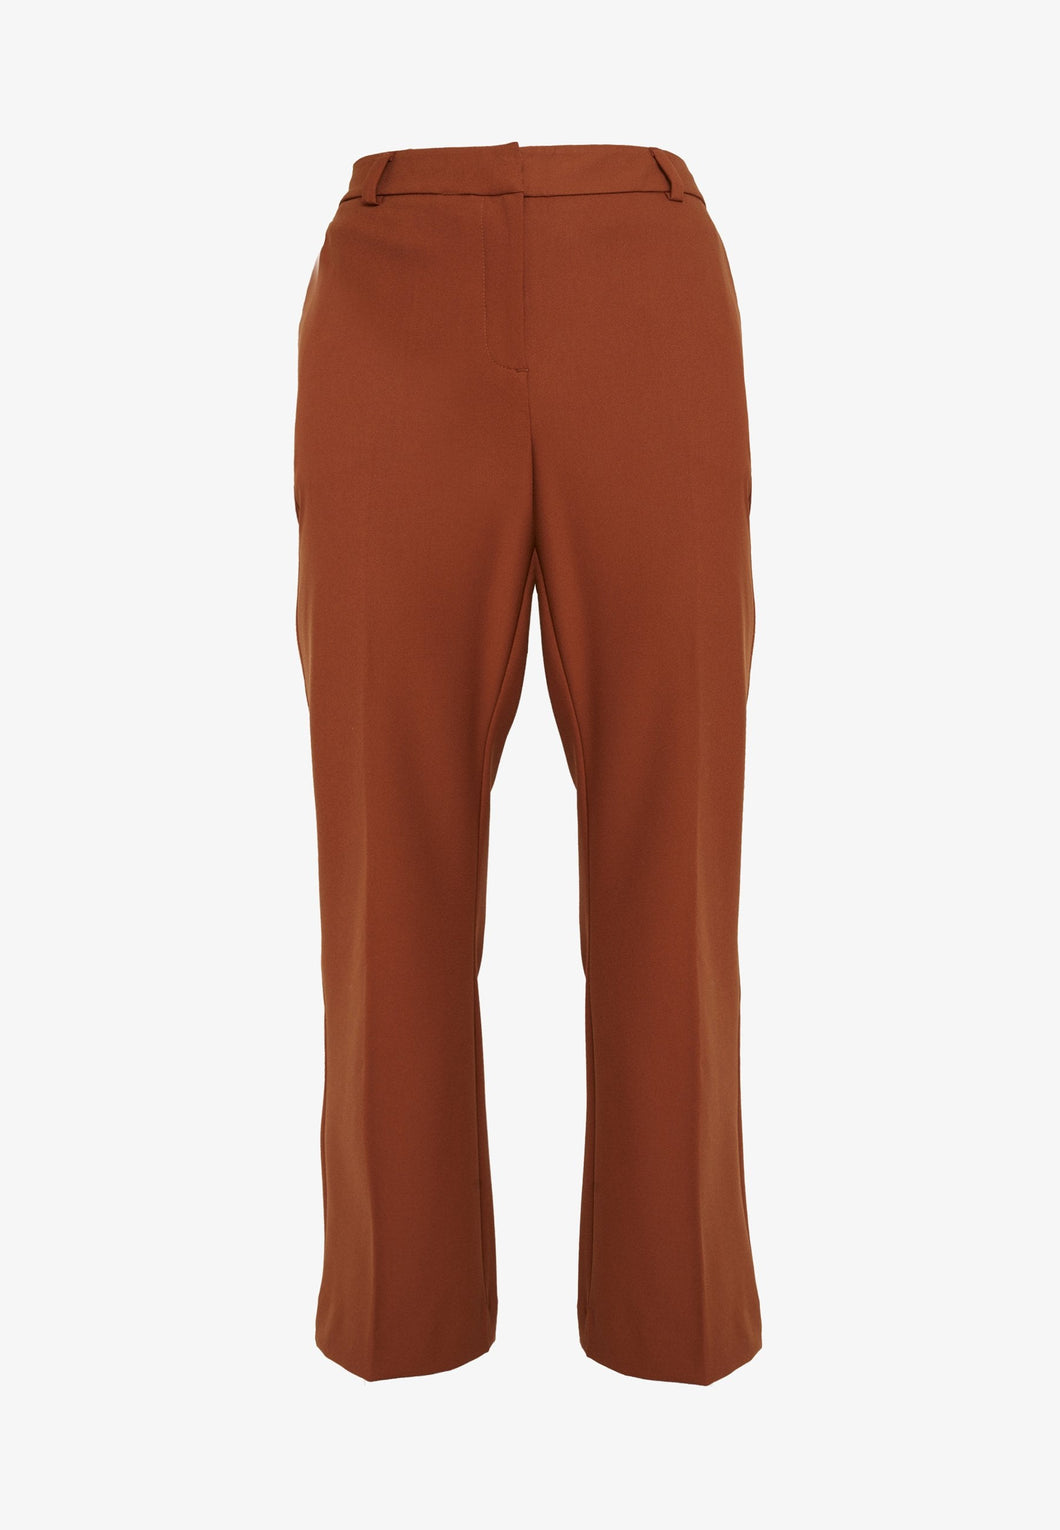 Selected Femme - Ada Cropped Pant Gingerbread